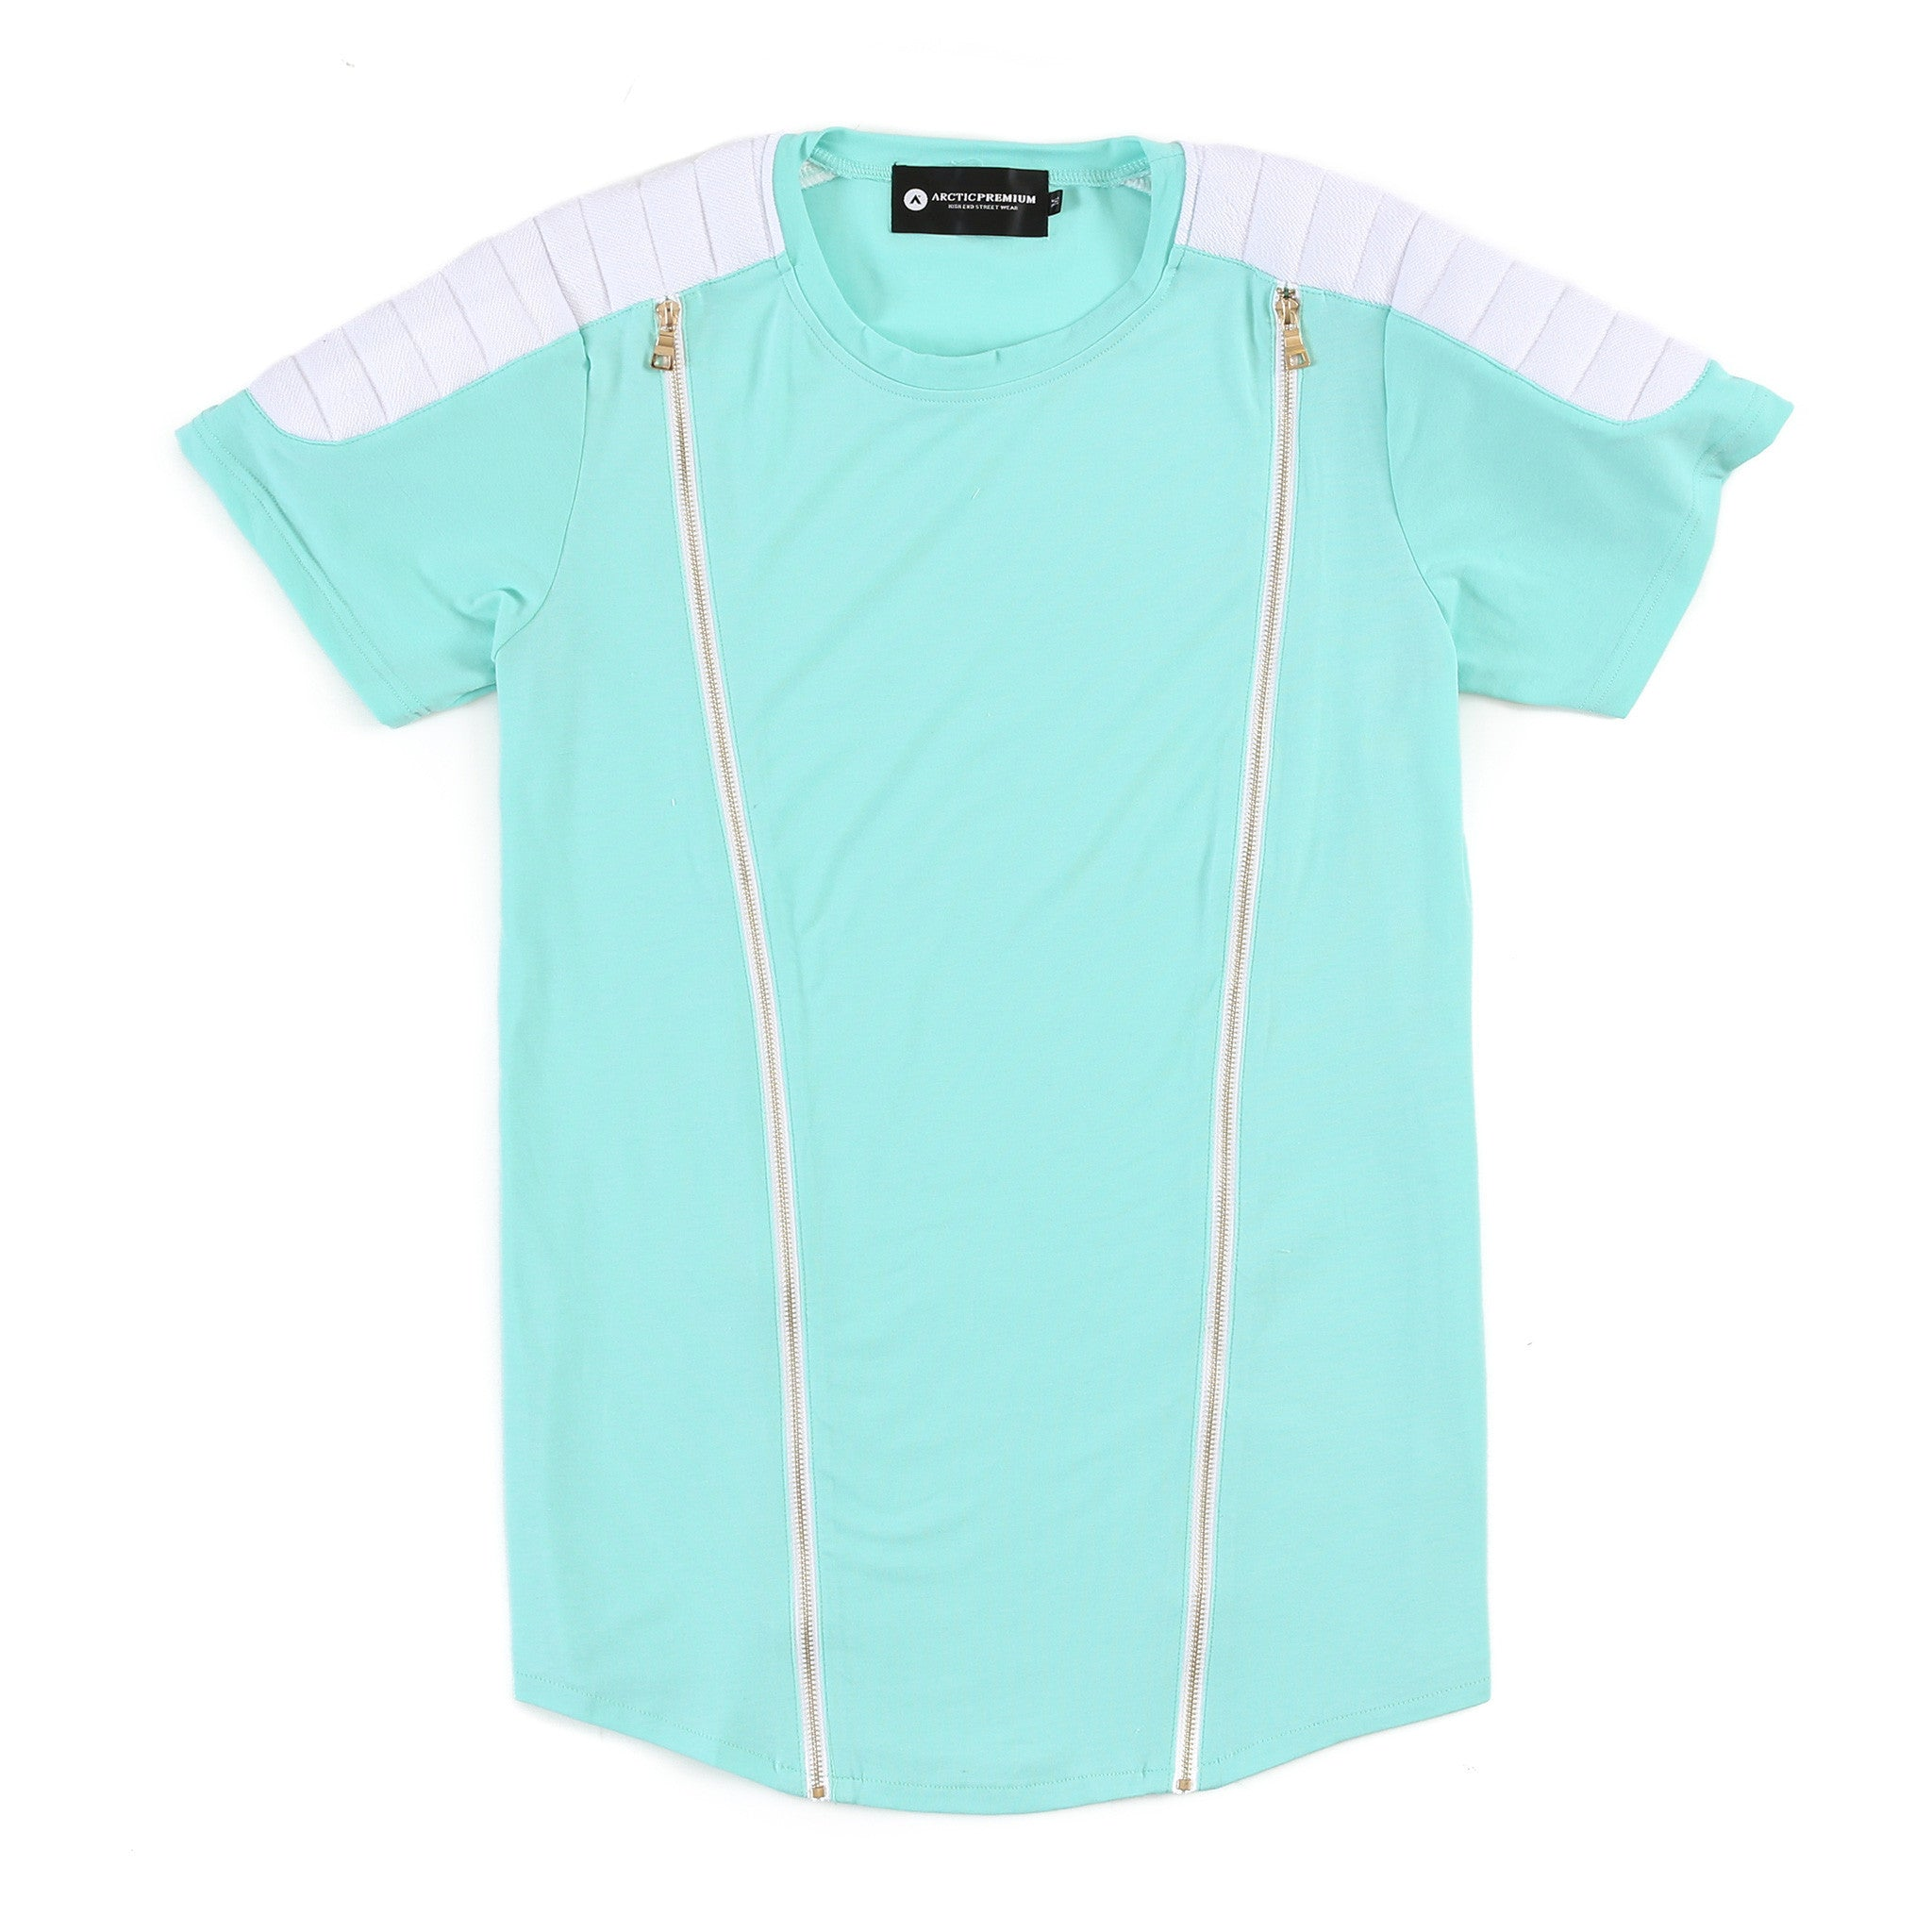 Viper Zippered Moto Shirt (Aqua Blue/White)